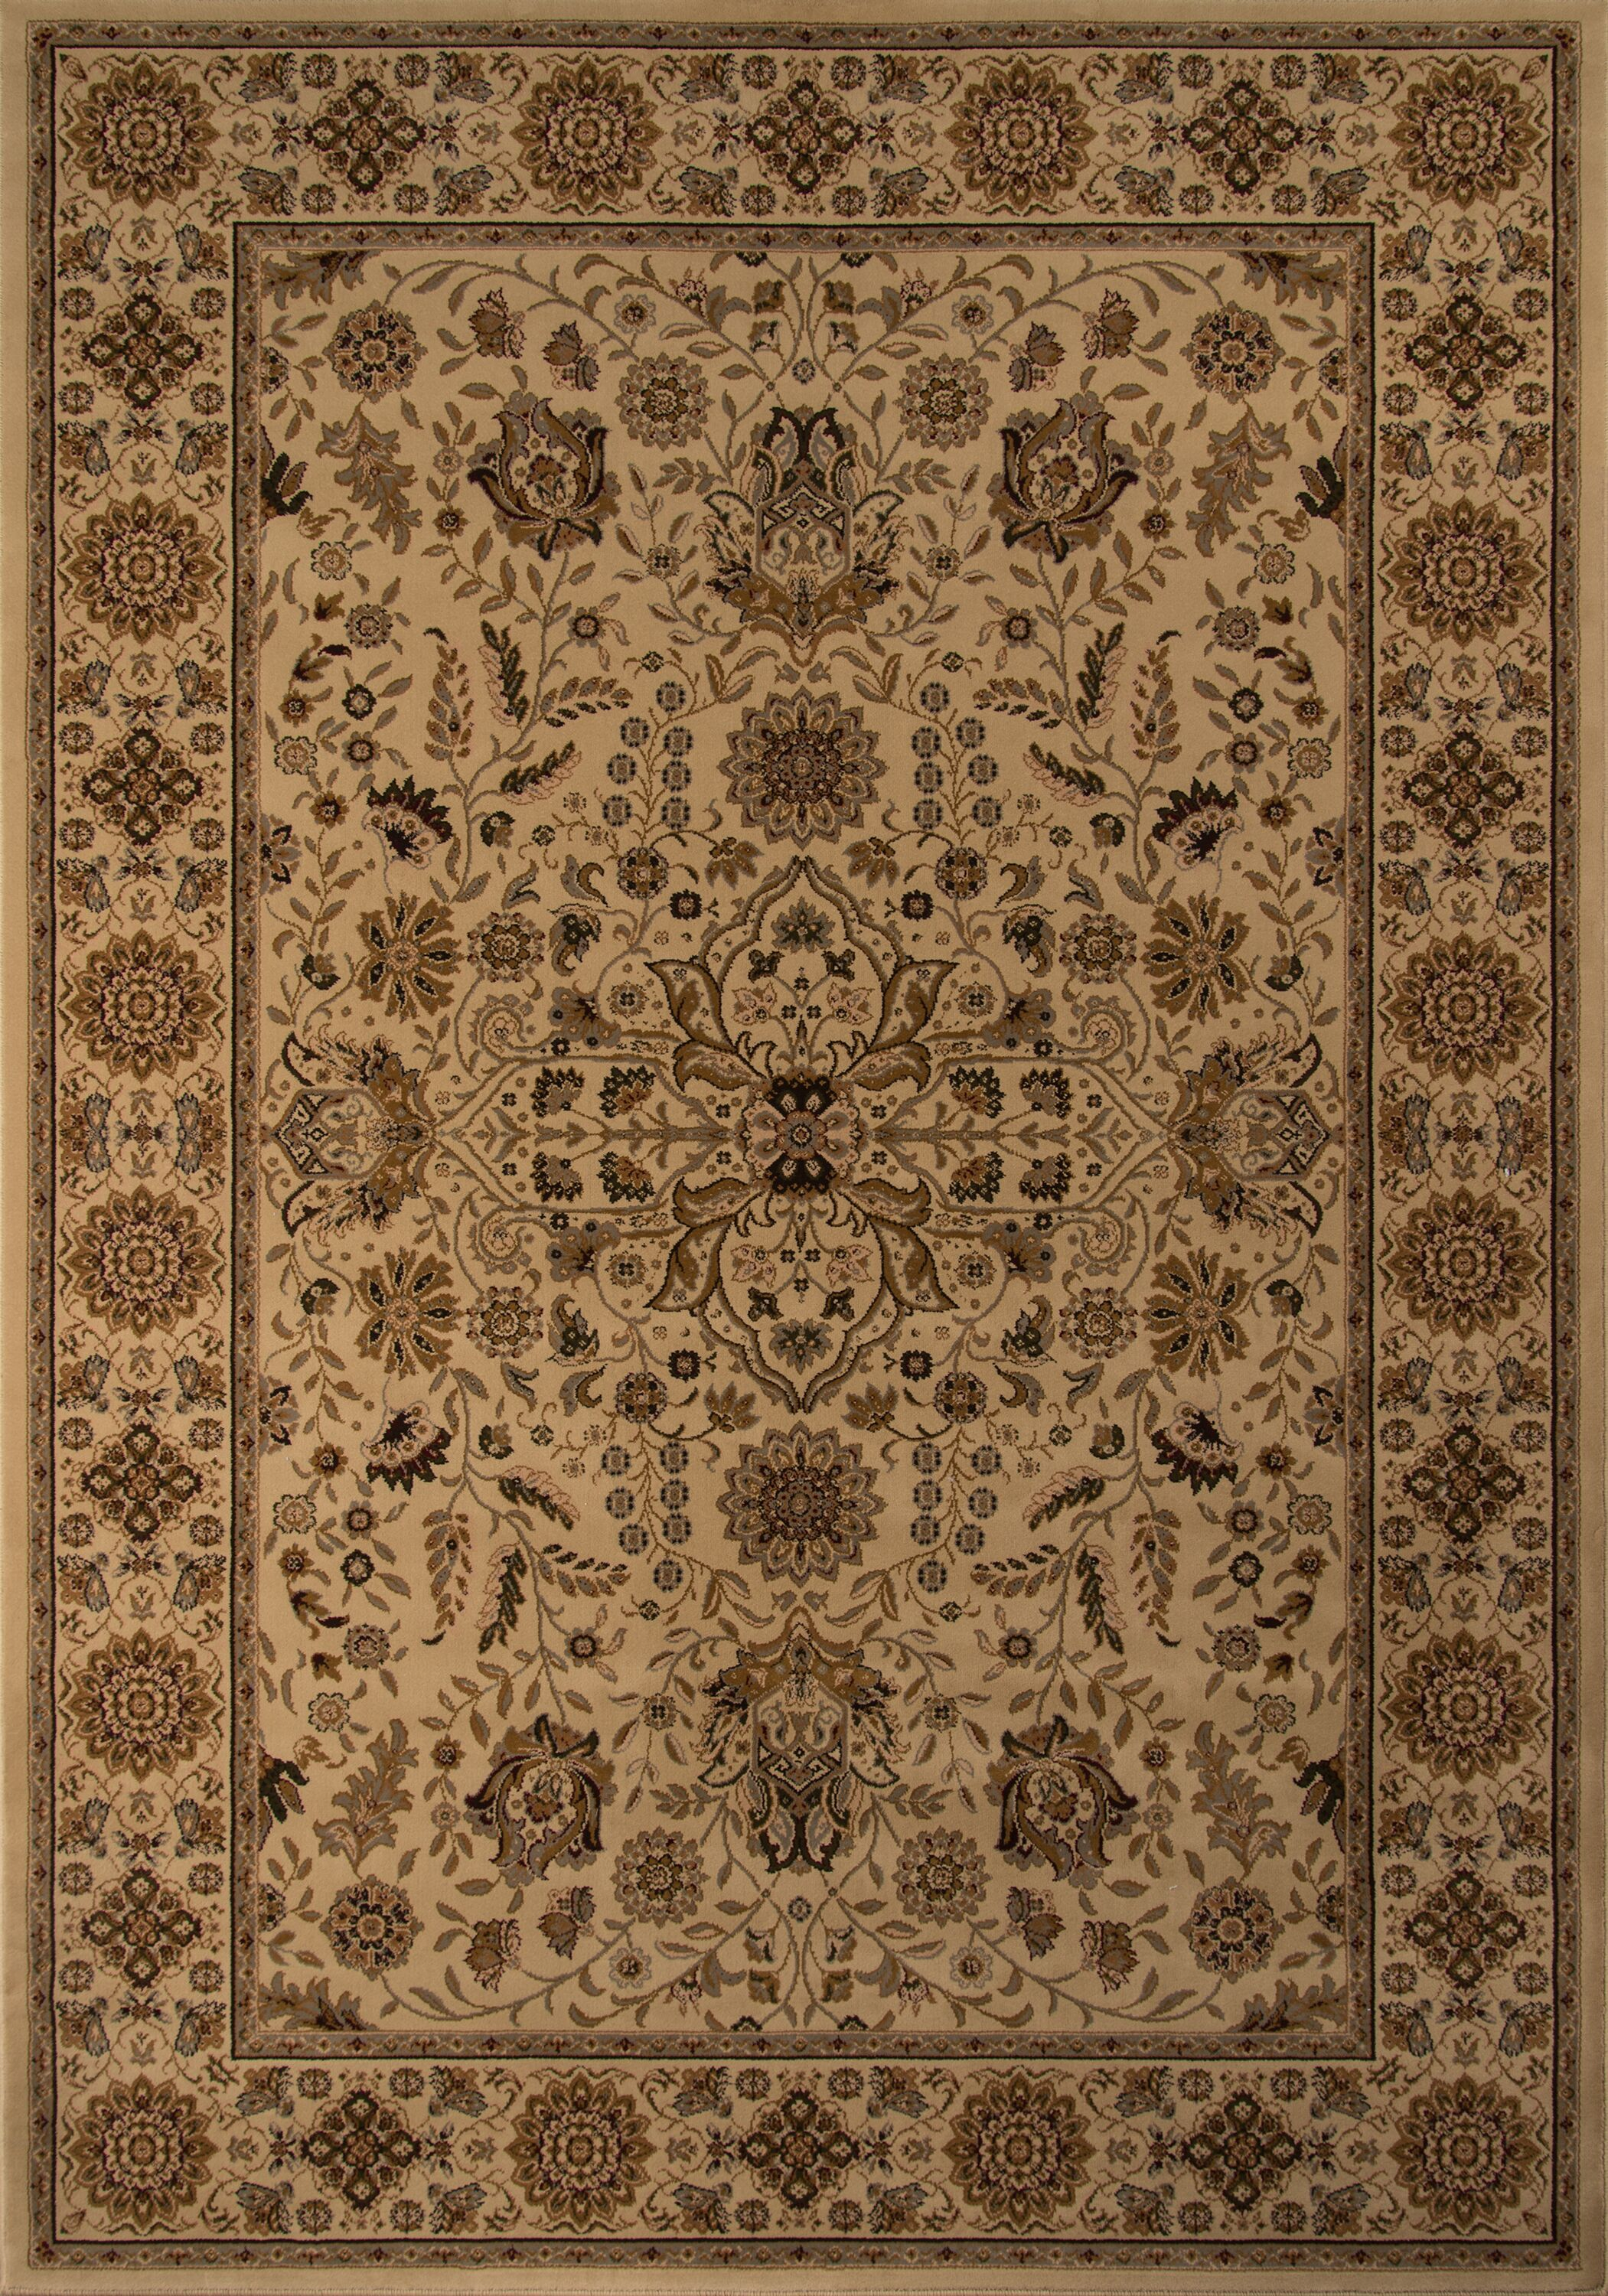 Mira Monte Beige Area Rug Rug Size: Rectangle 11'3